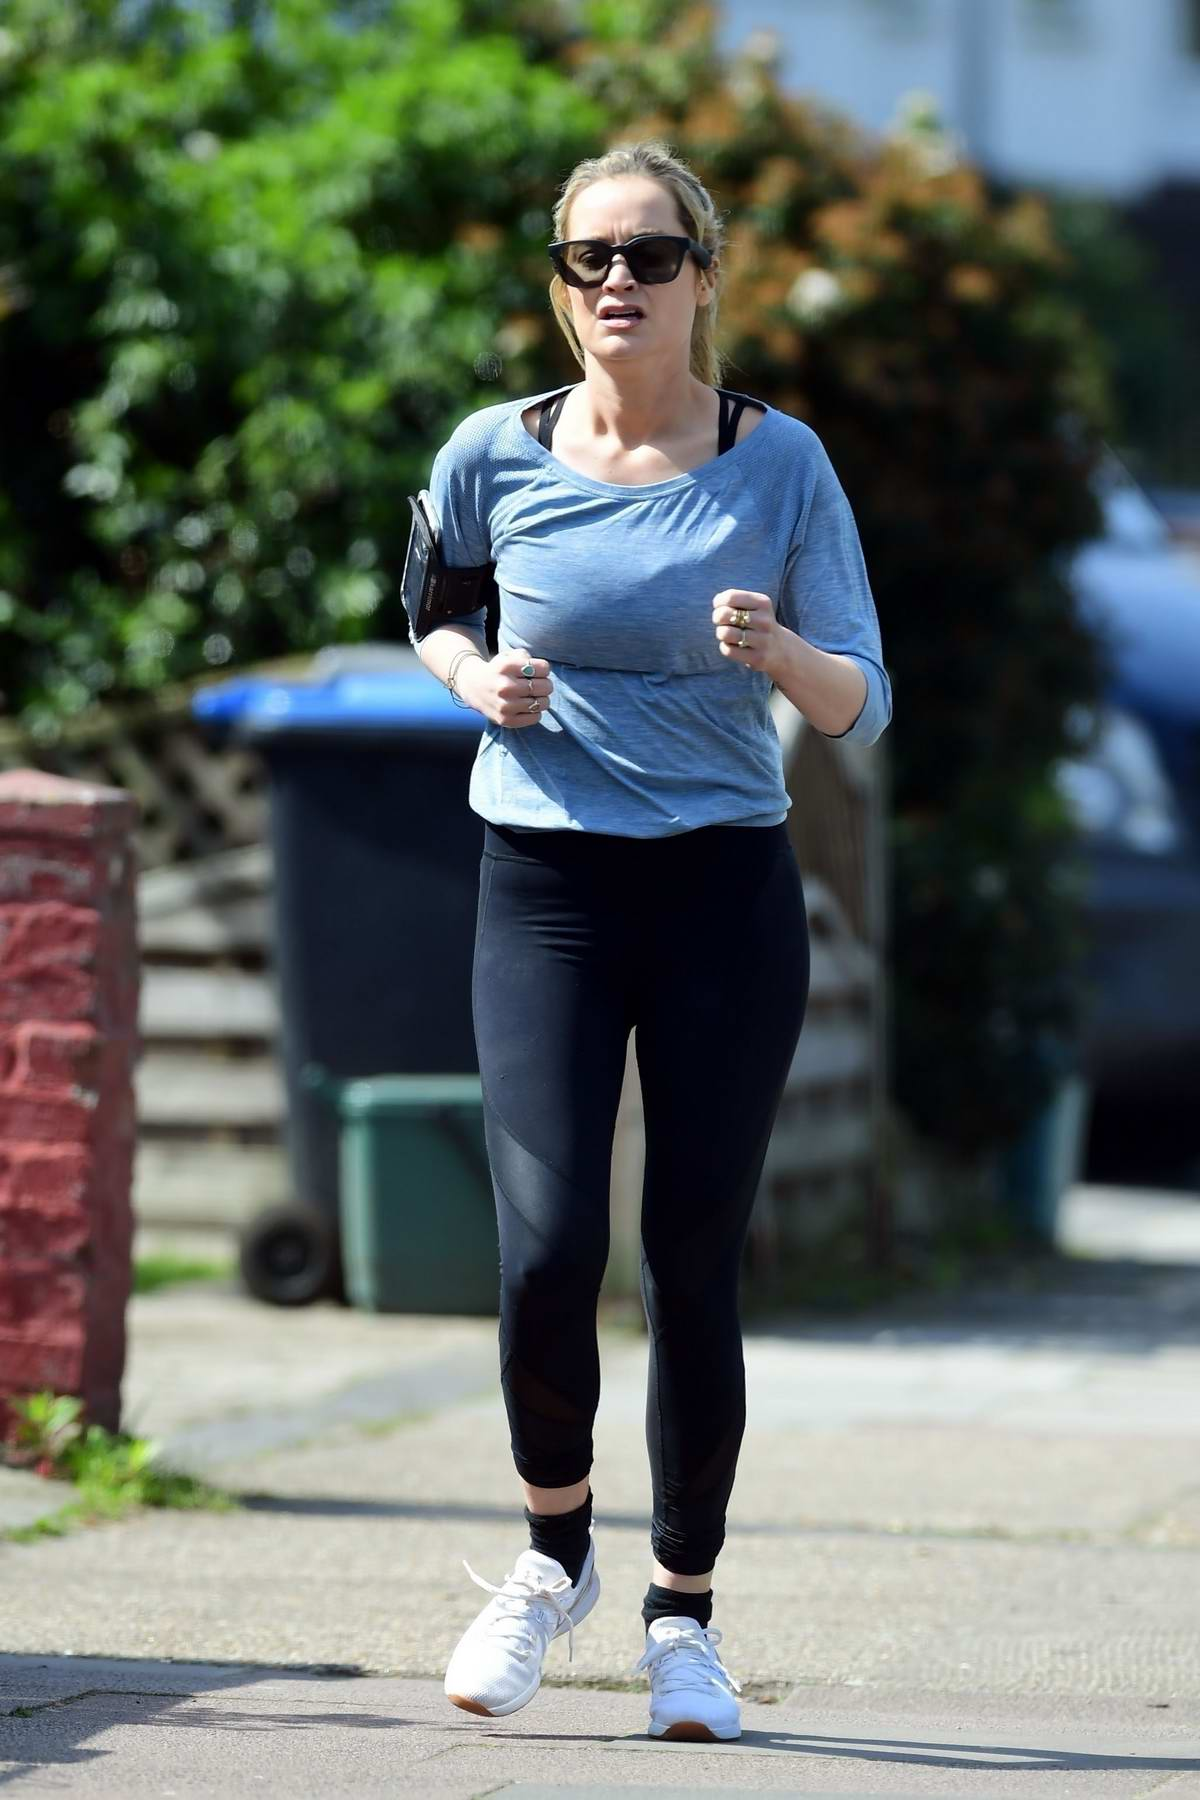 Laura Whitmore keeps up with her fitness routine as she goes for a run in London, UK